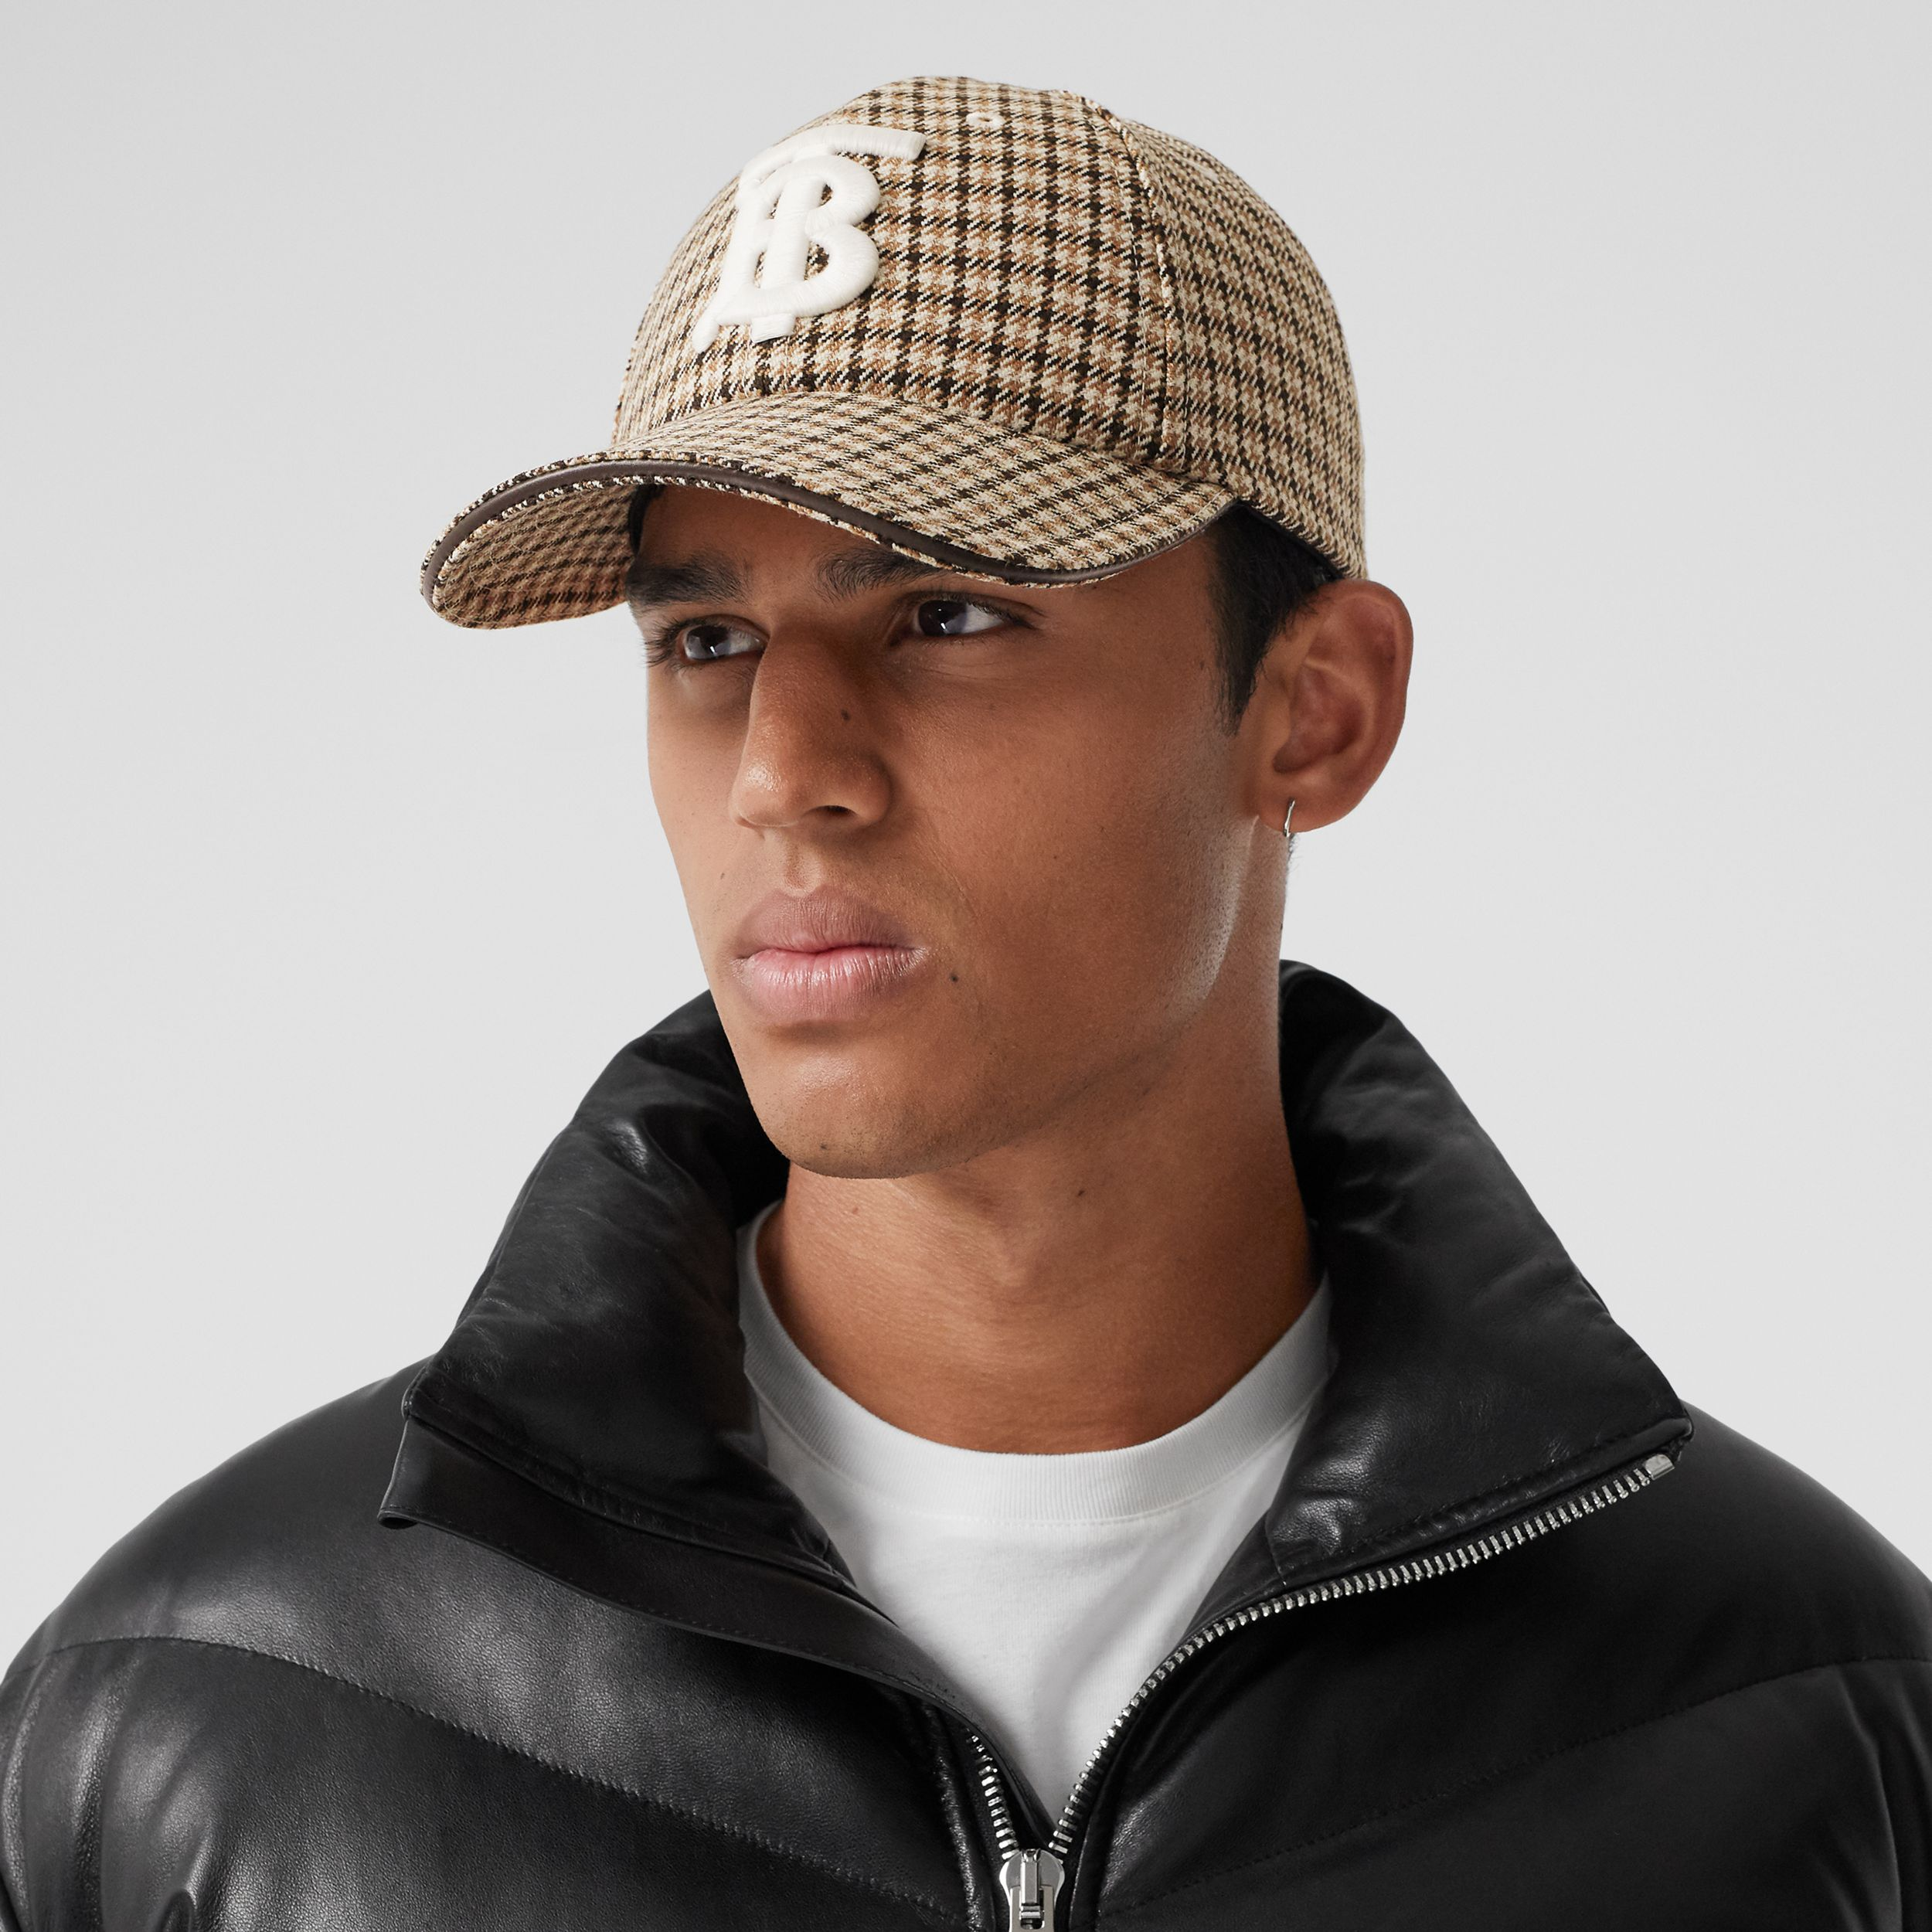 Monogram Motif Houndstooth Check Baseball Cap in Fawn | Burberry - 4